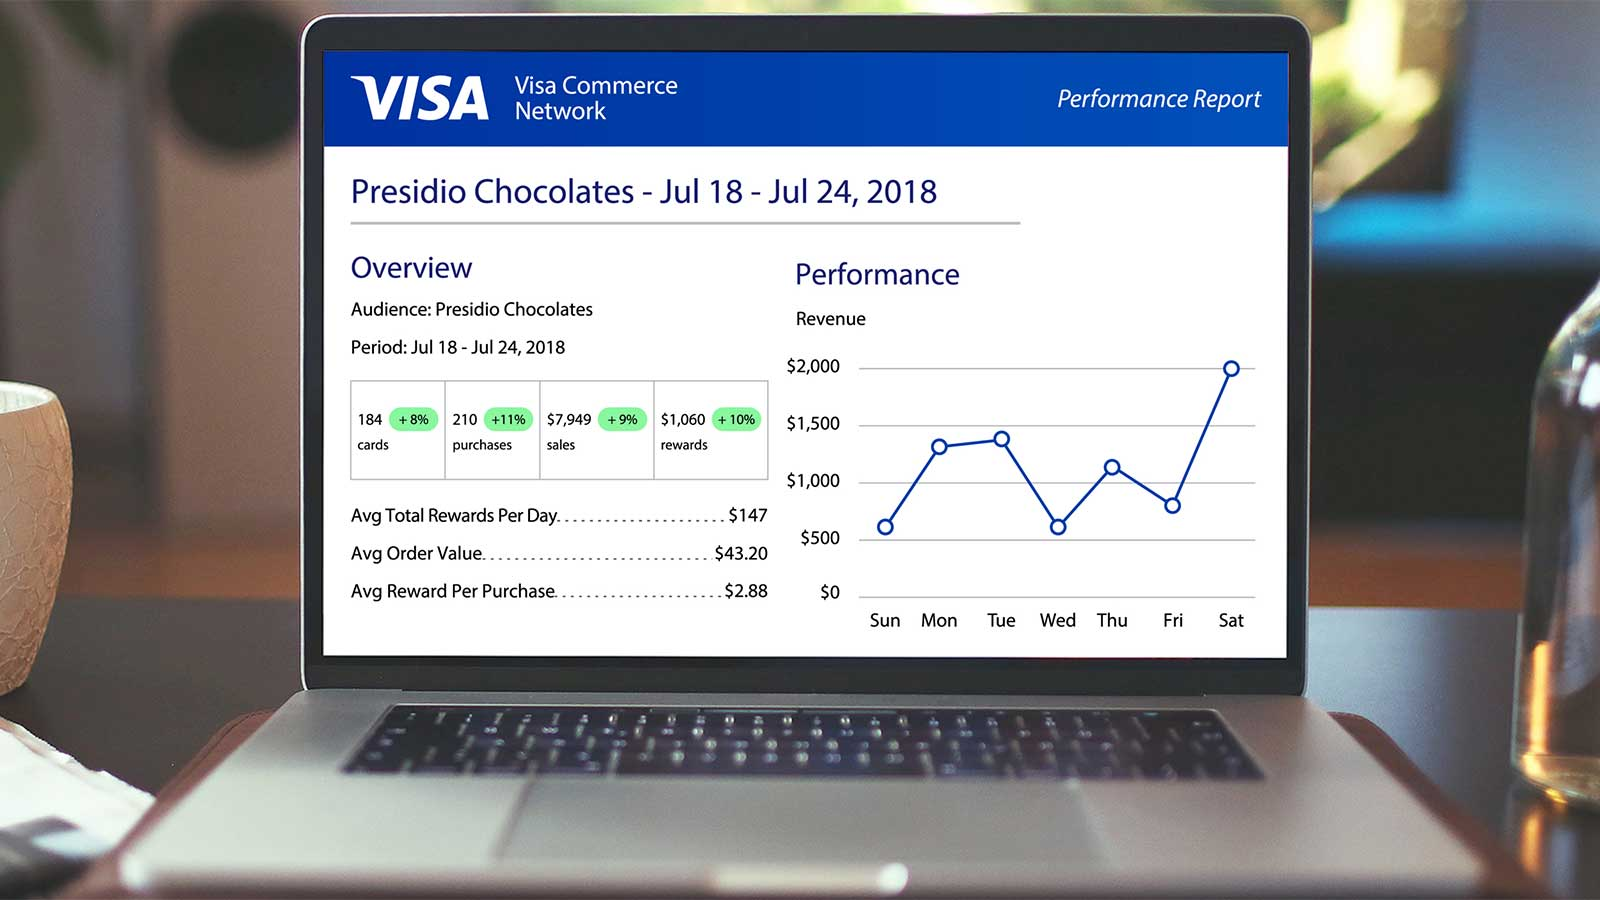 Laptop display of sample metrics included in Visa Commerce Network Performance Report.